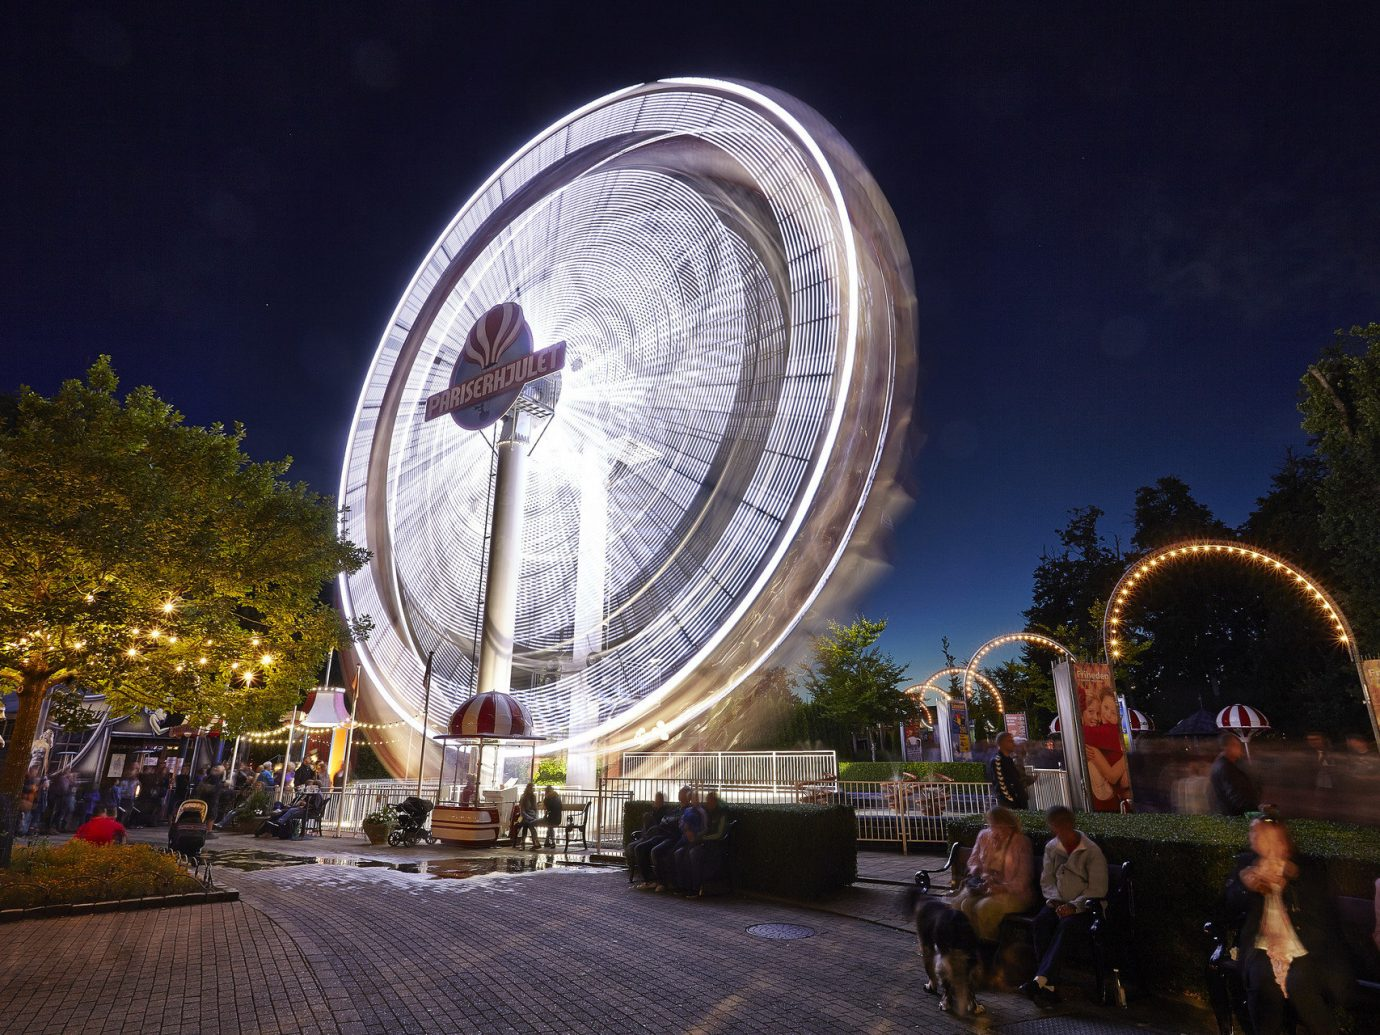 Adventure Copenhagen Denmark Luxury Travel Outdoor Activities Trip Ideas outdoor amusement park ferris wheel night landmark park device outdoor recreation recreation tourist attraction amusement ride fair world decorated